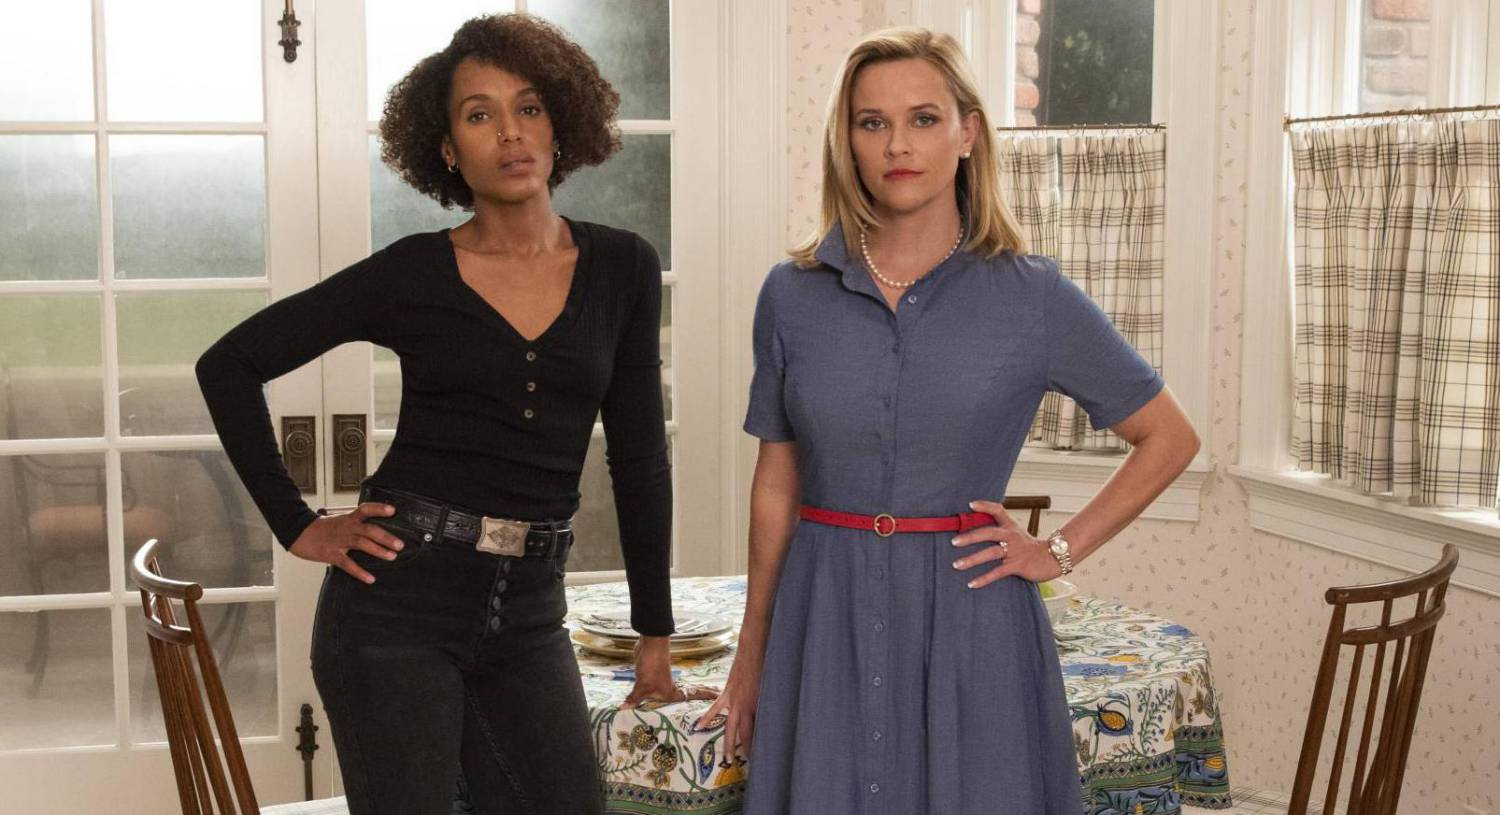 Reese Witherspoon on Little Fires Everywhere and women's power partnerships